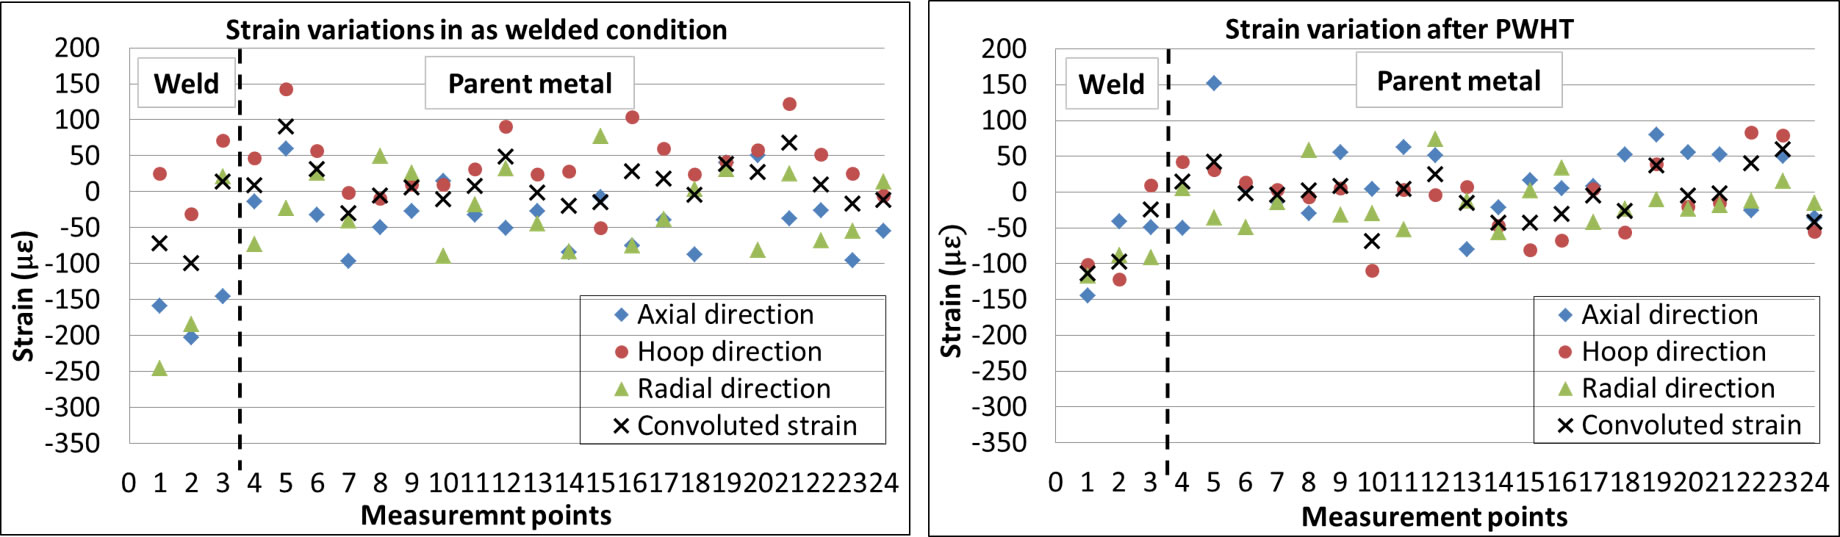 Figure 5. Strain variation based on selected reference d-scpacing values